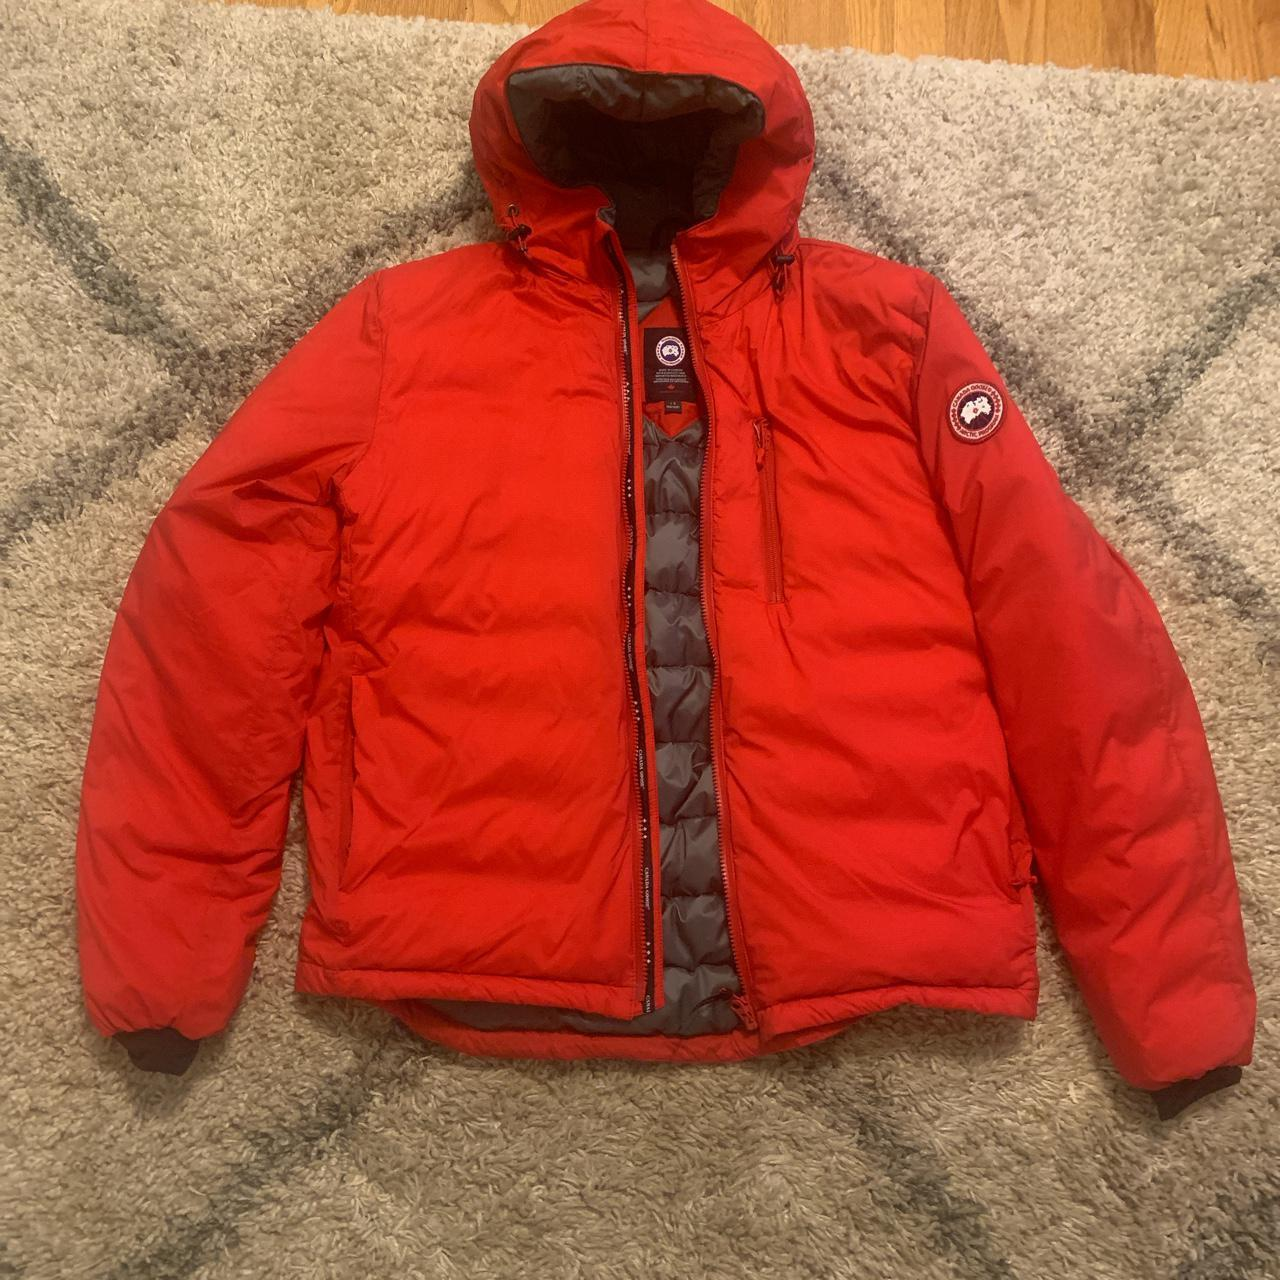 Product Image 1 - Canada Goose Red Puffer Jacket